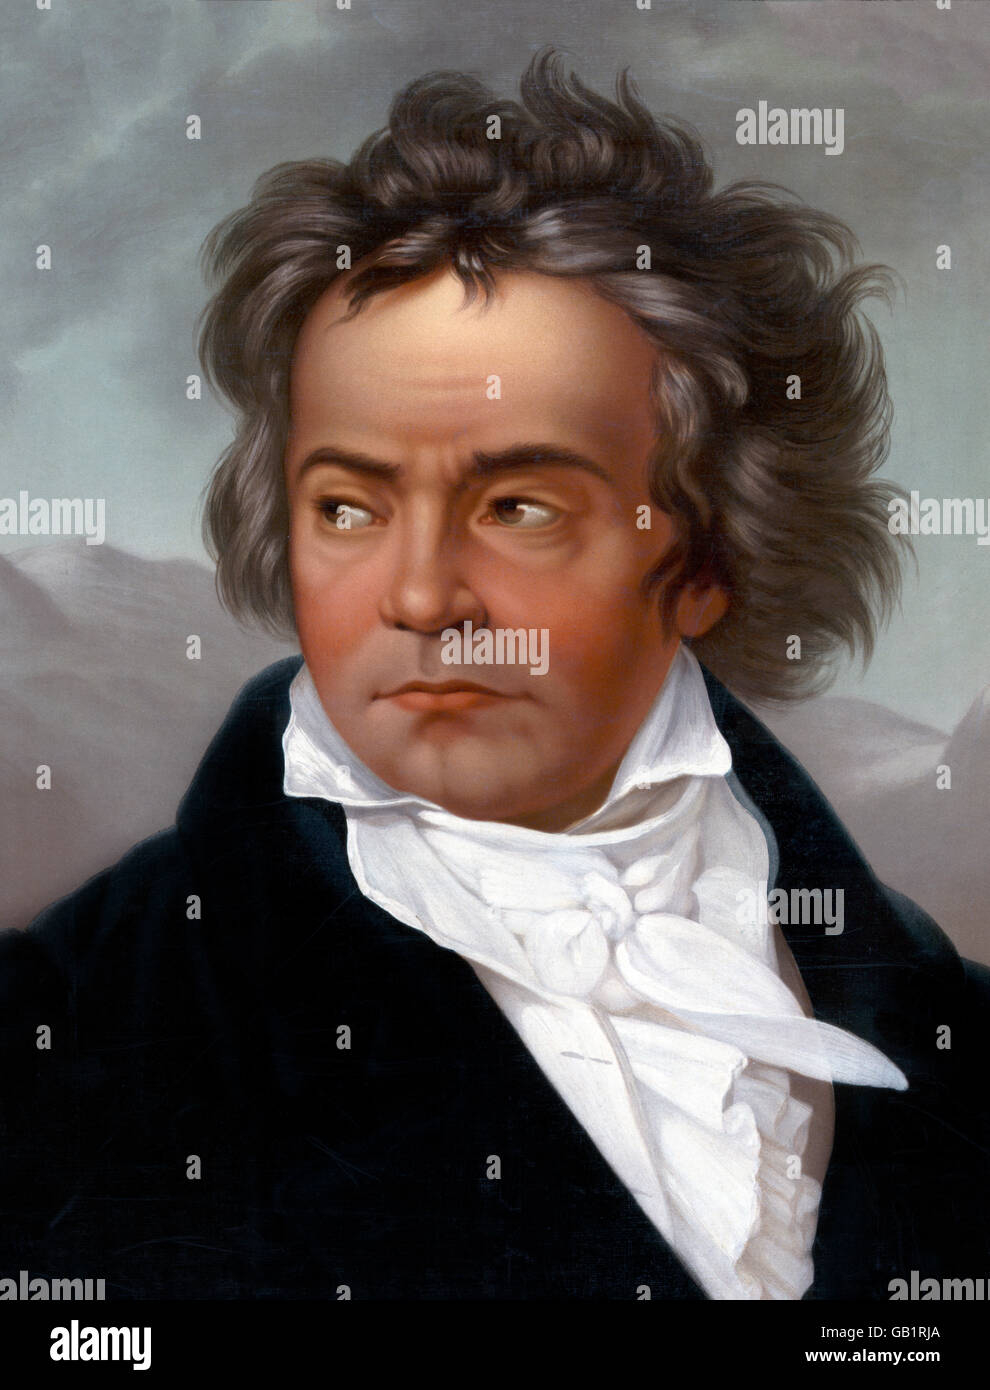 Beethoven. Portrait of the German composer, Ludwig van Beethoven (1770-1827). Published by L Prang & Co, c.1870. Stock Photo